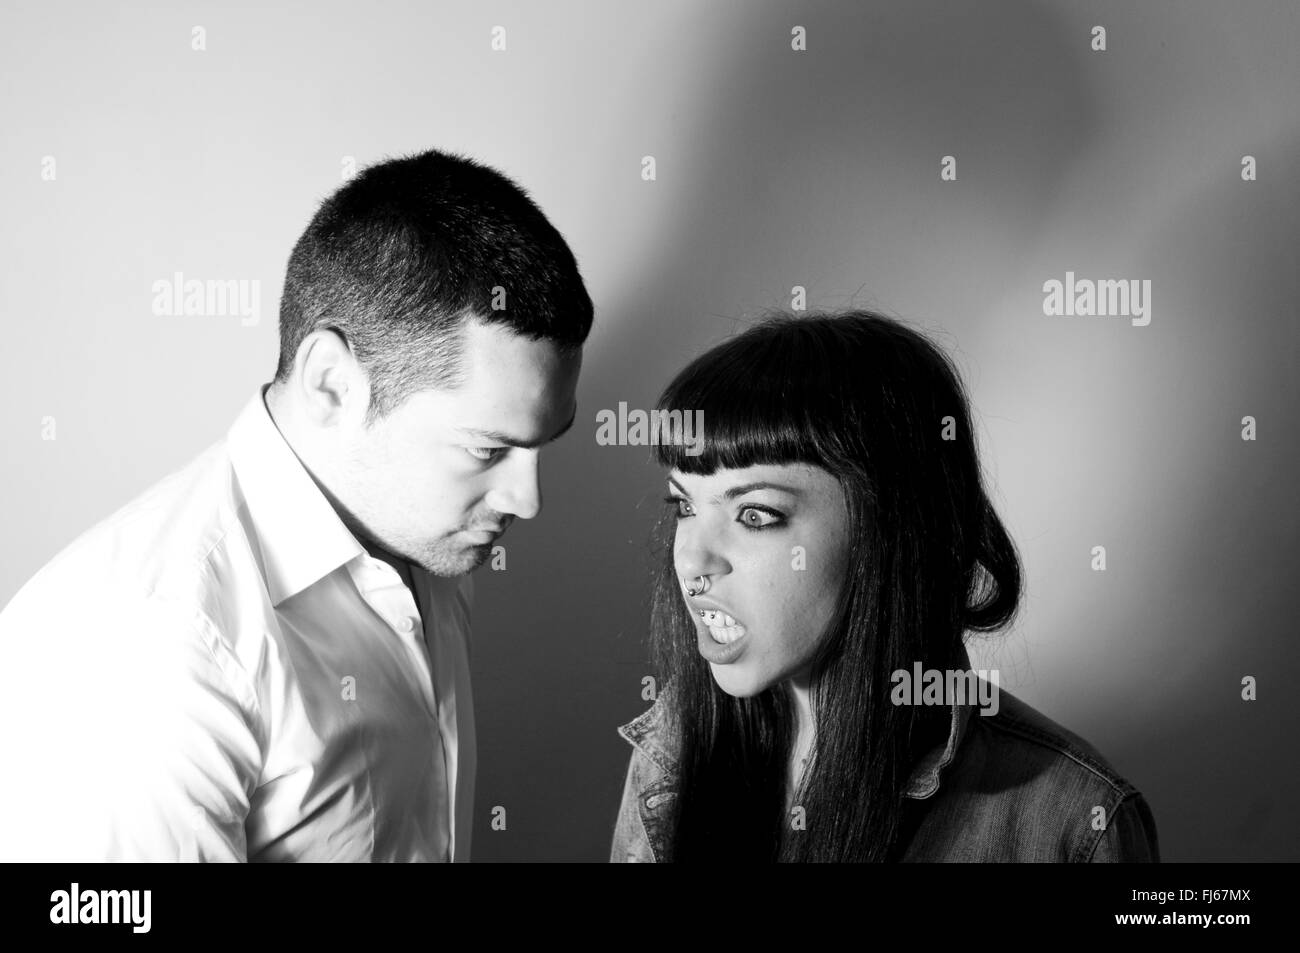 Human relations: young couple having an argument. Black & White. - Stock Image